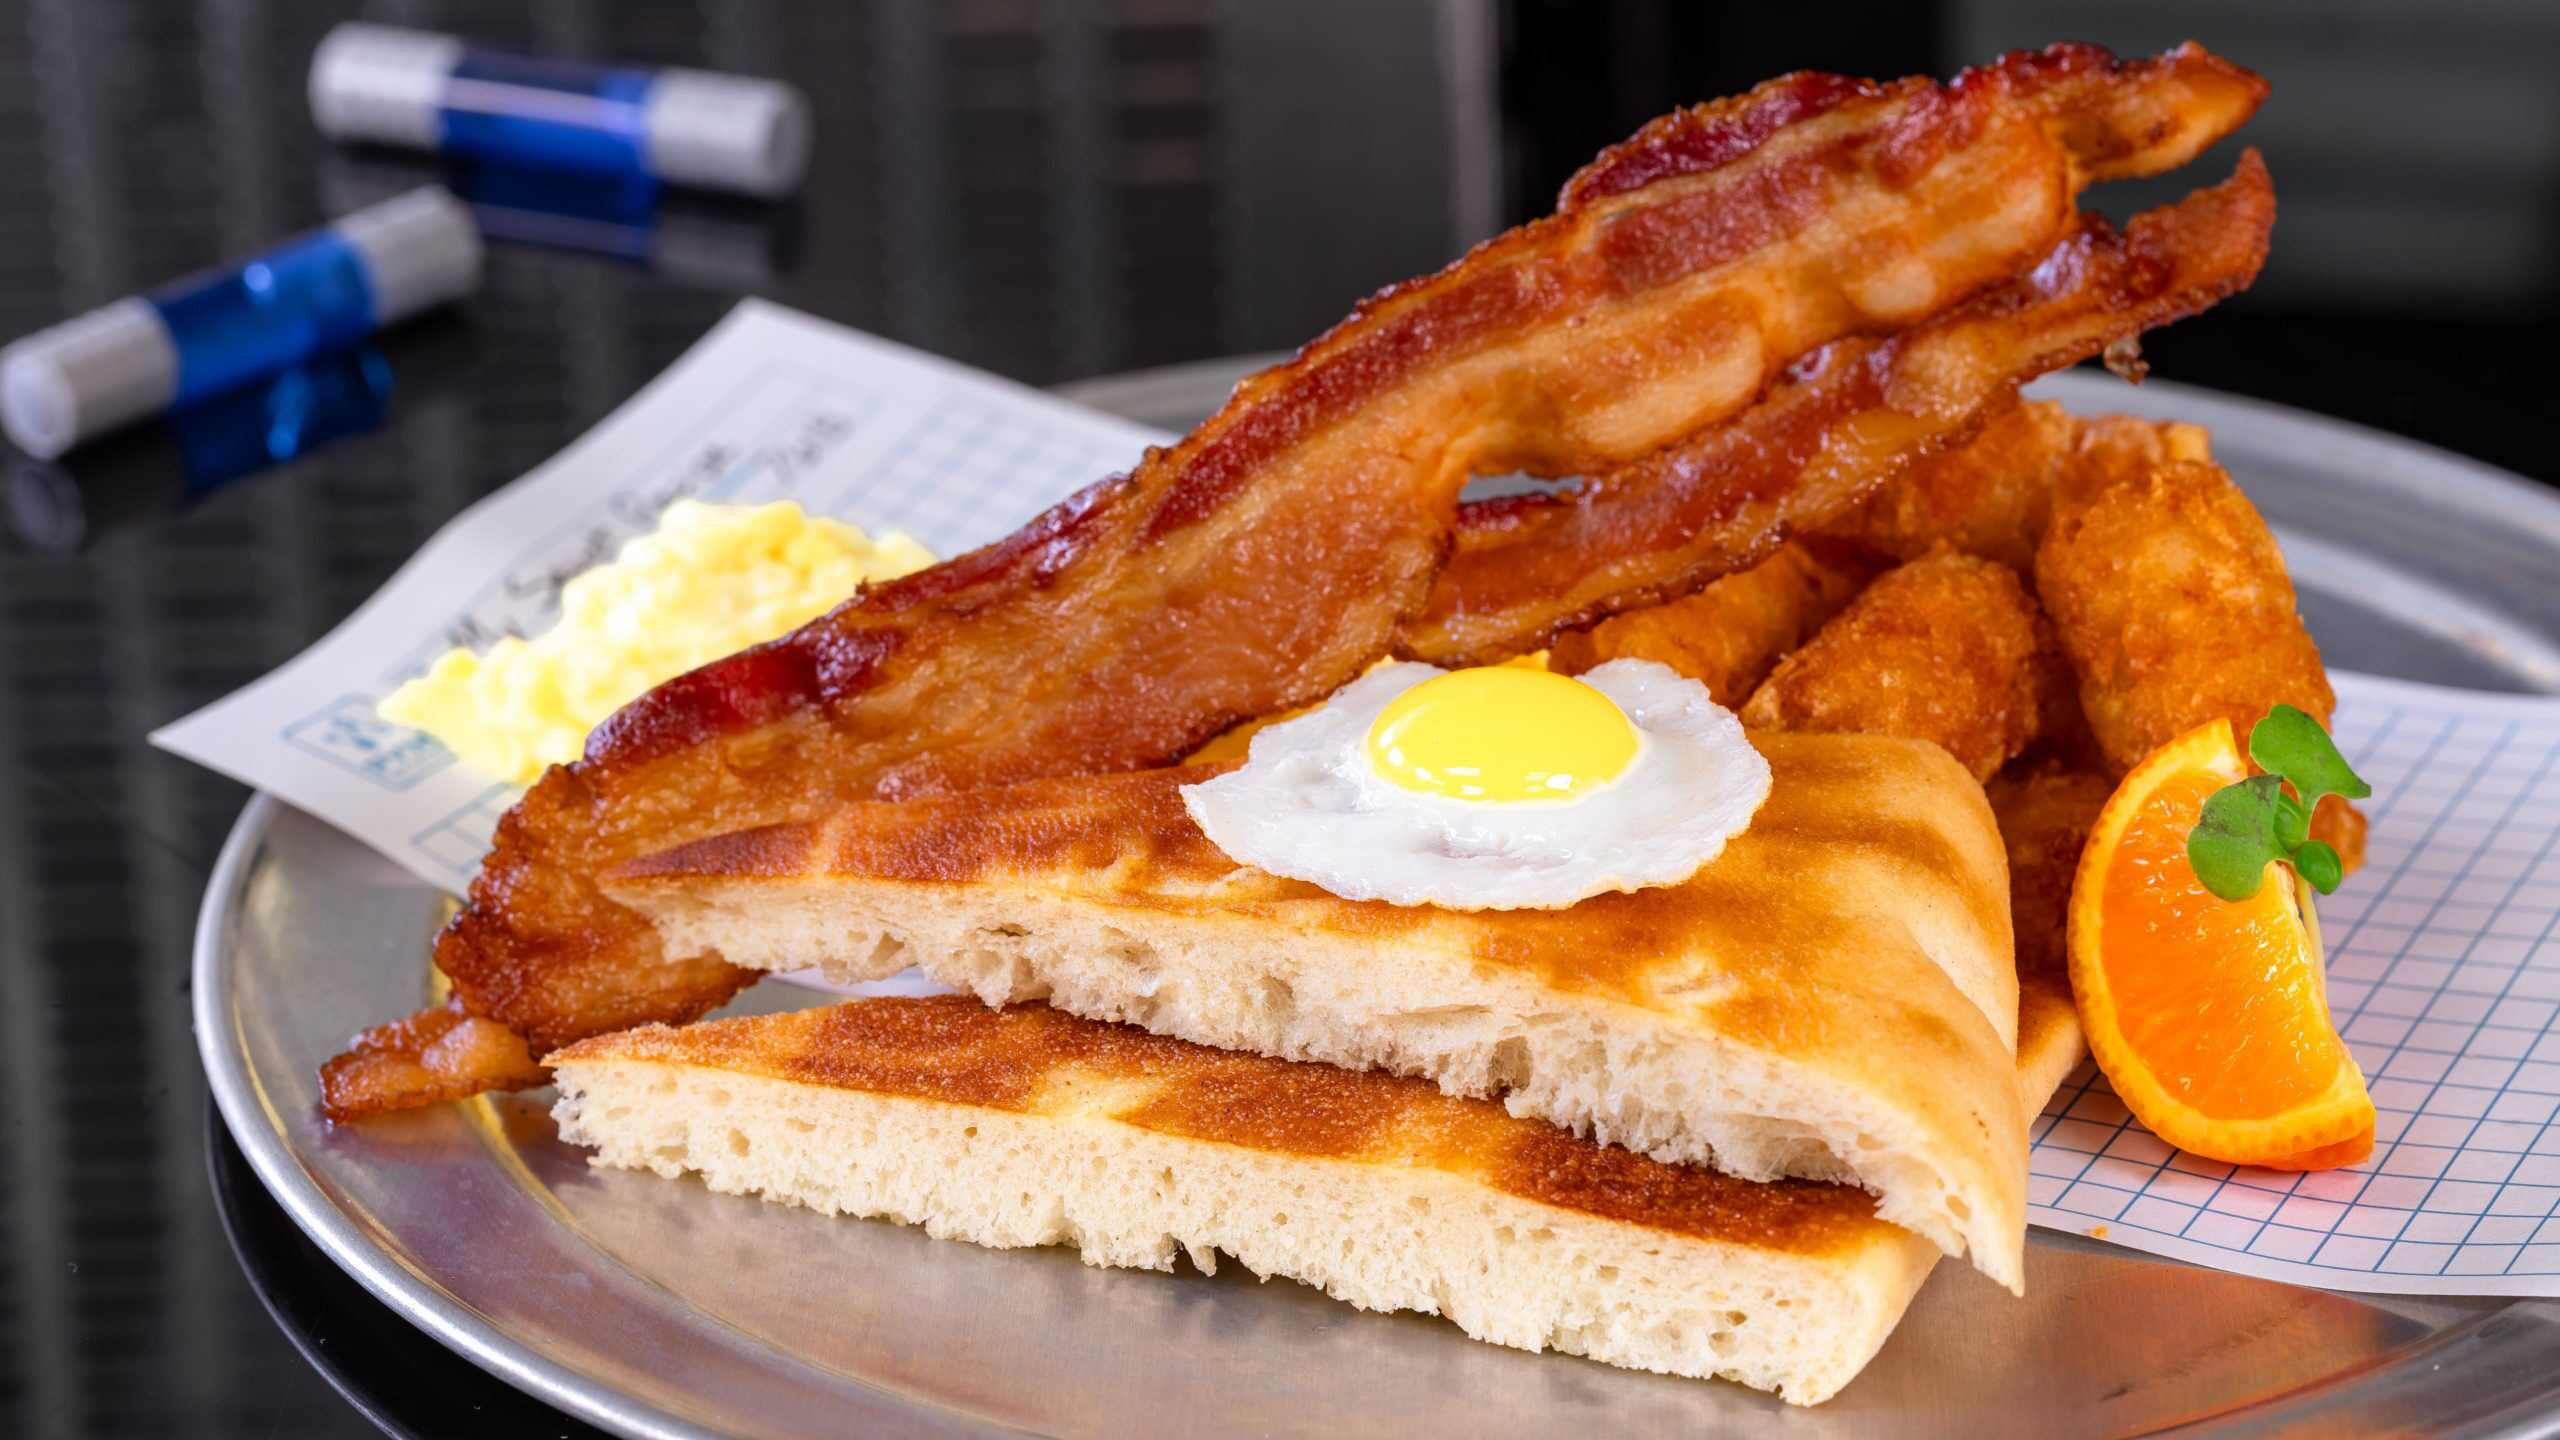 Avengers Campus Food & Beverage Ð Calculated Breakfast = E x 2 + (B+P)/T Ð Eggs Two Ways